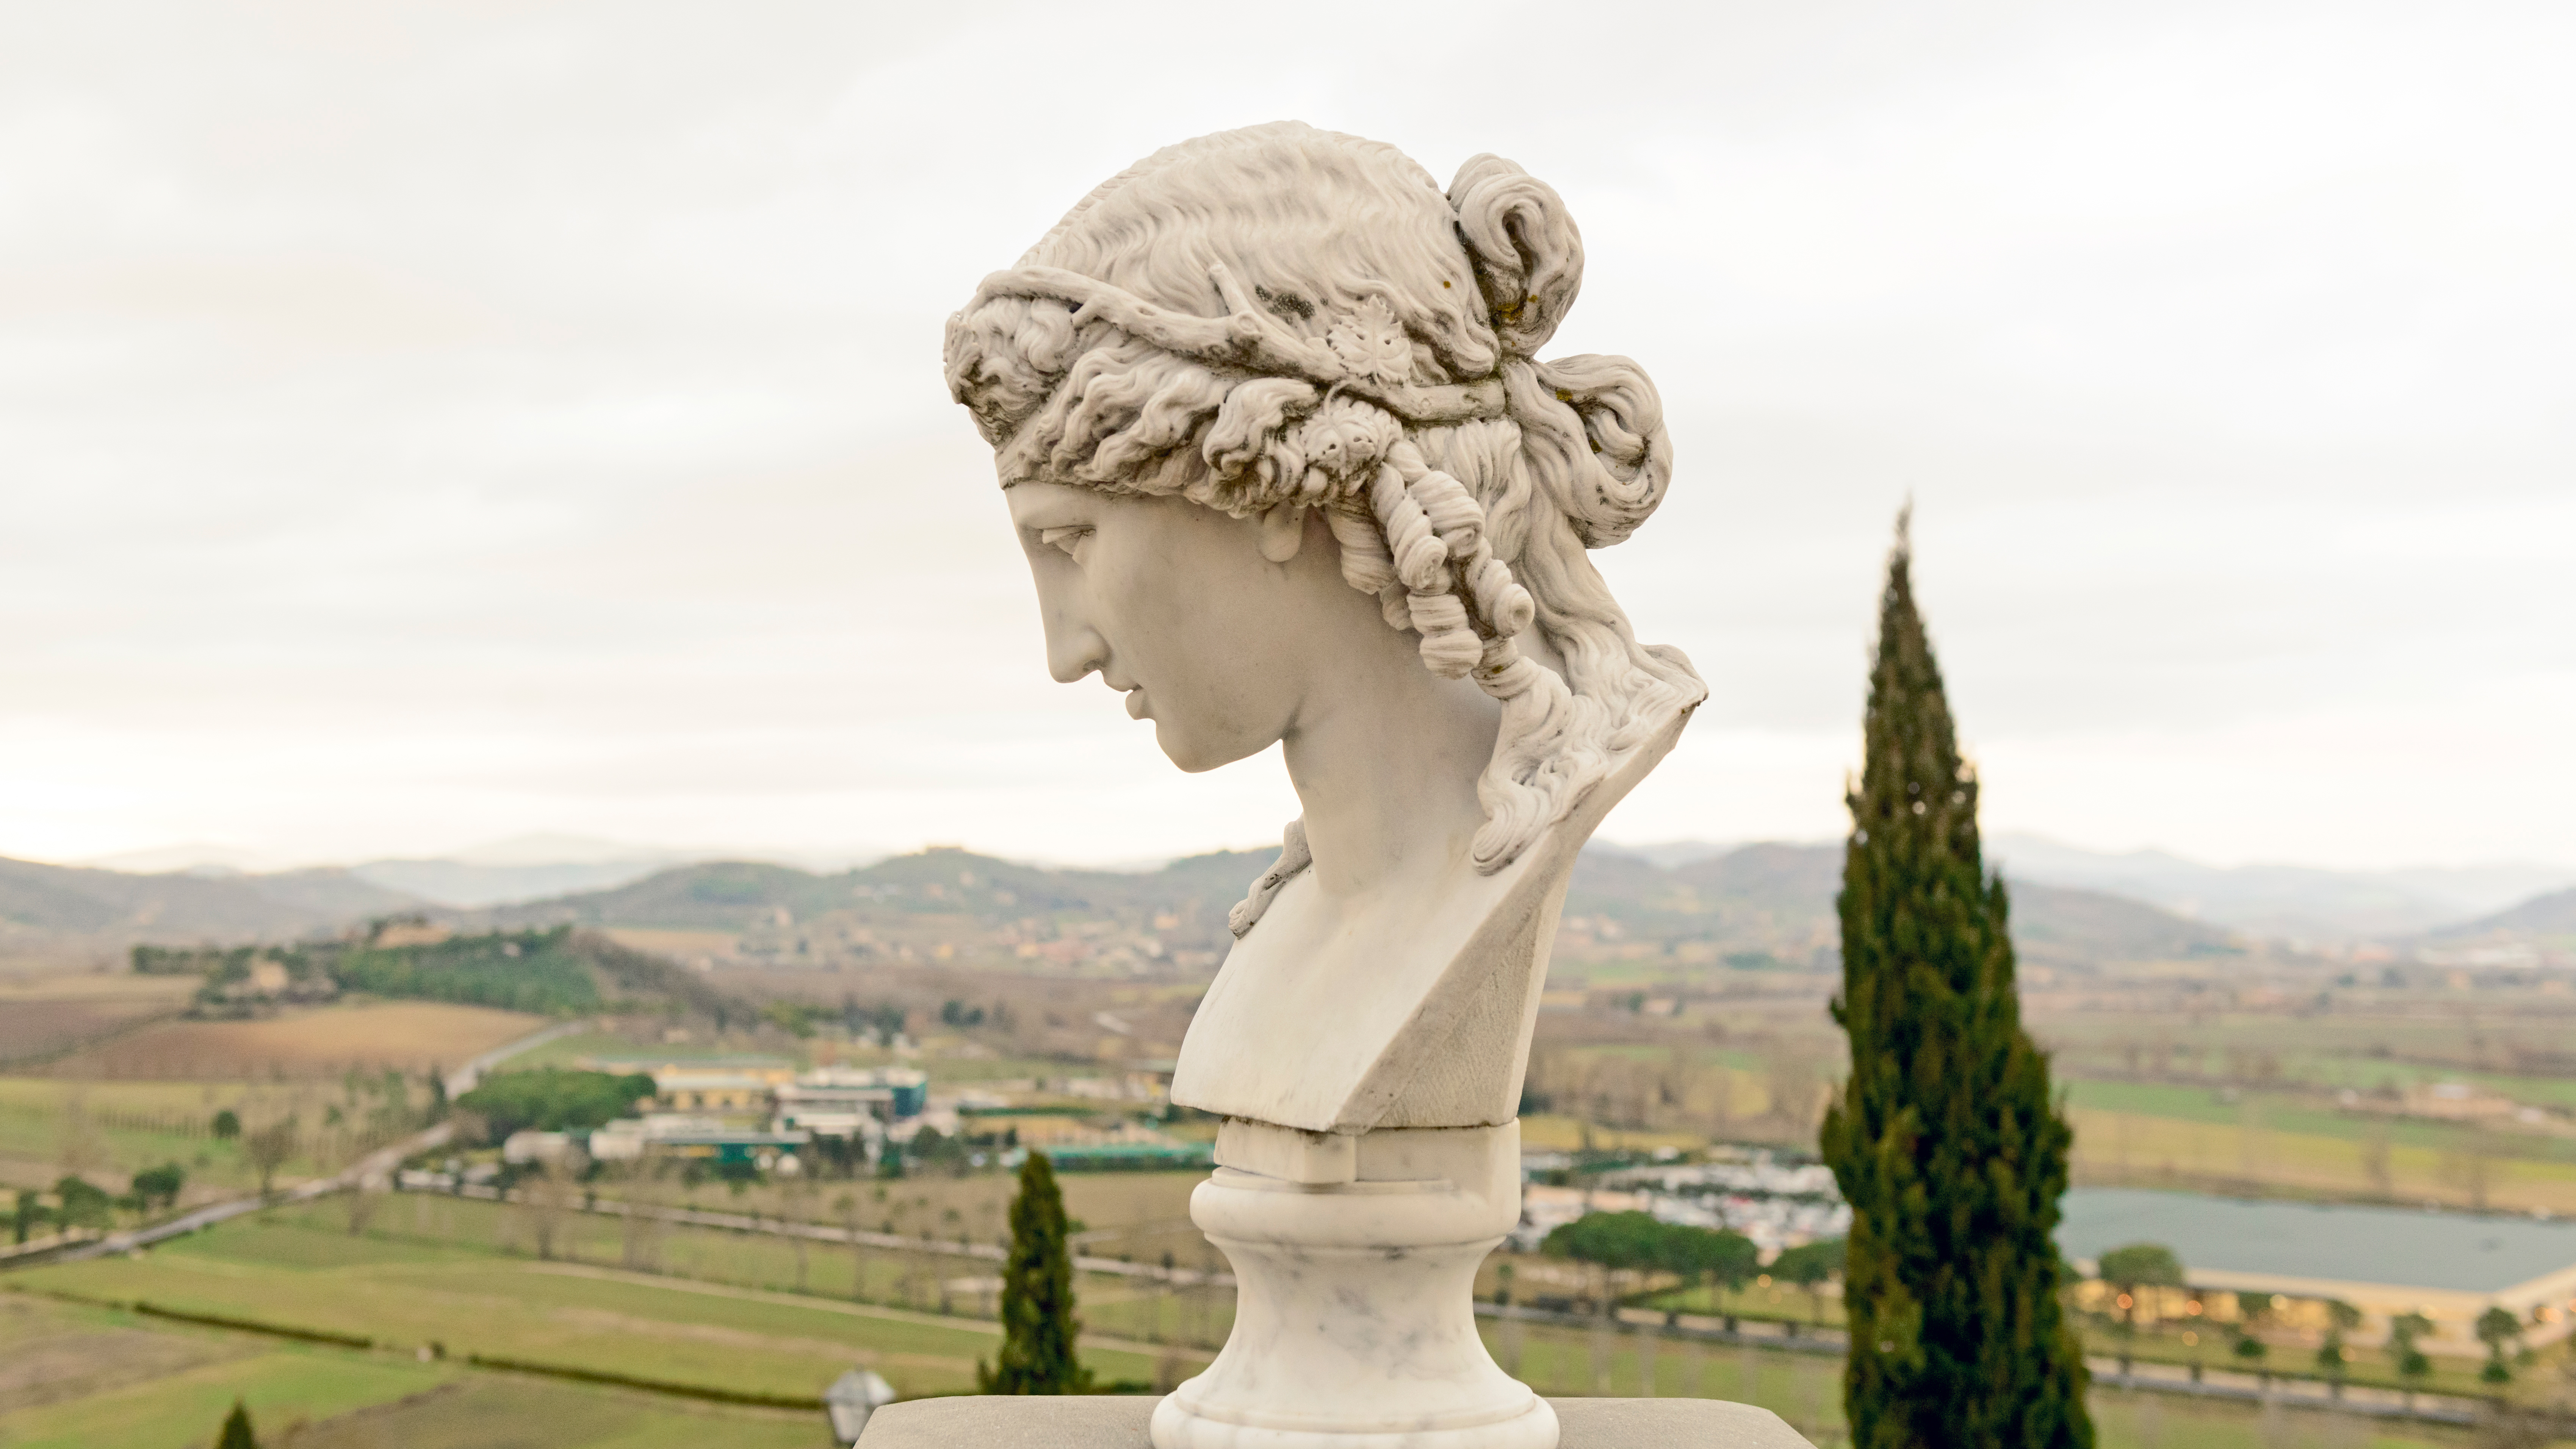 Camilla Cucinelli's Apollo bust, a gift from her father.